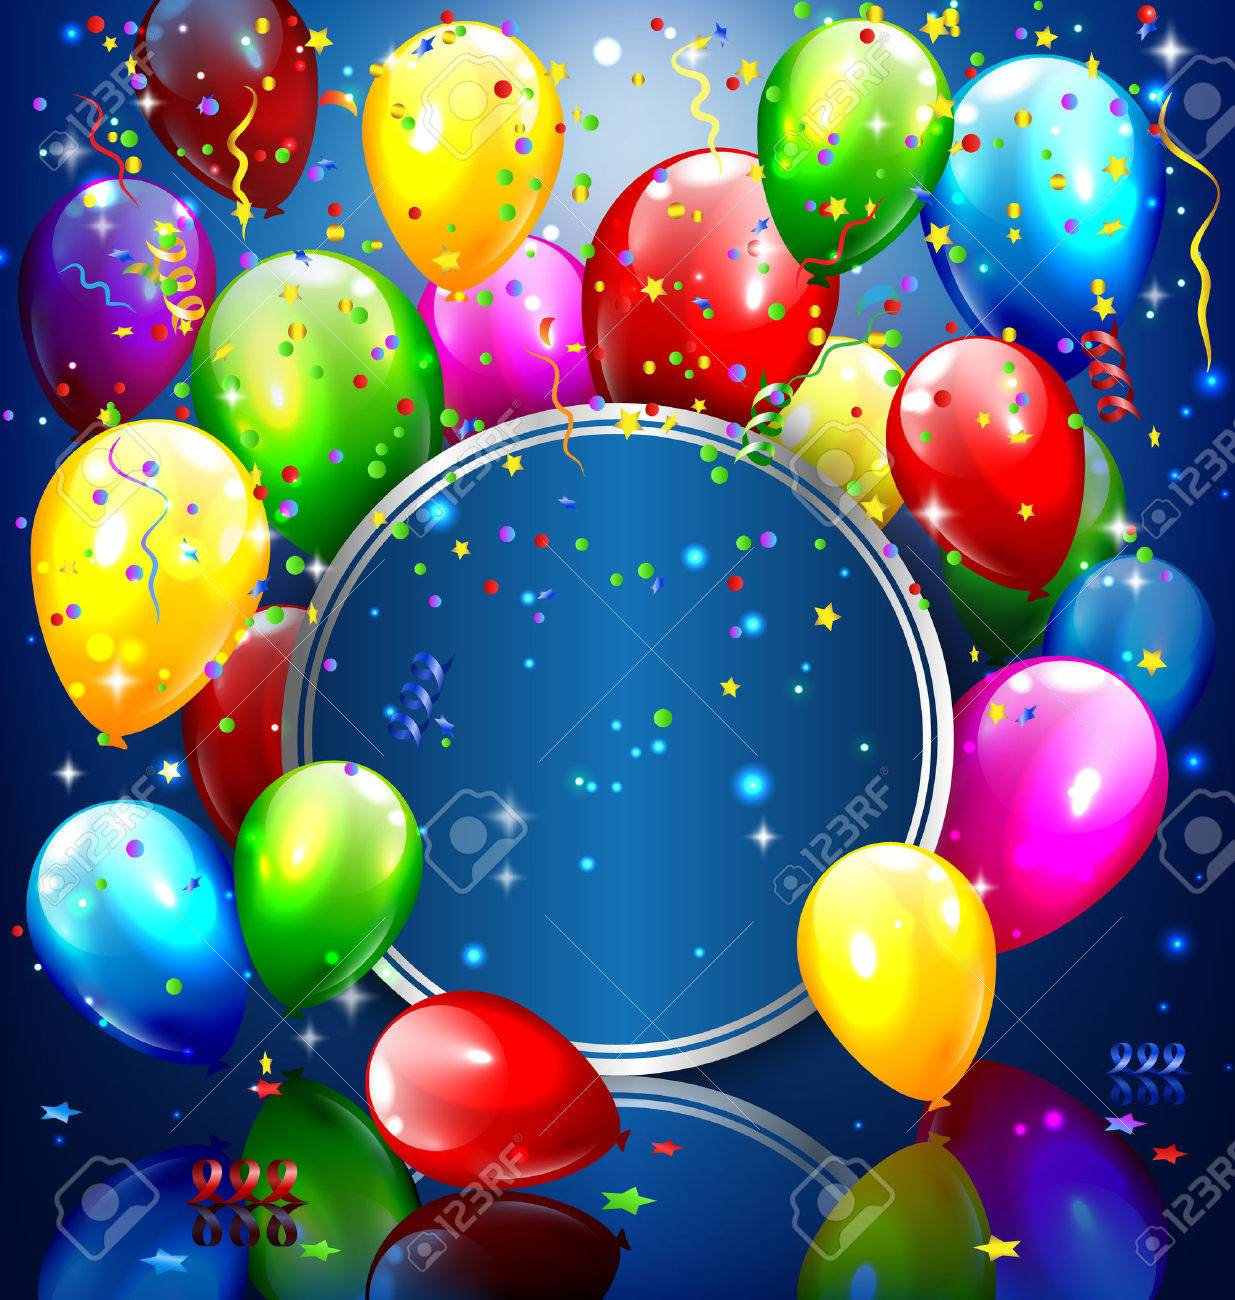 Multicolored inflatable balloons with circle frame and confetti on blue background - 41732148